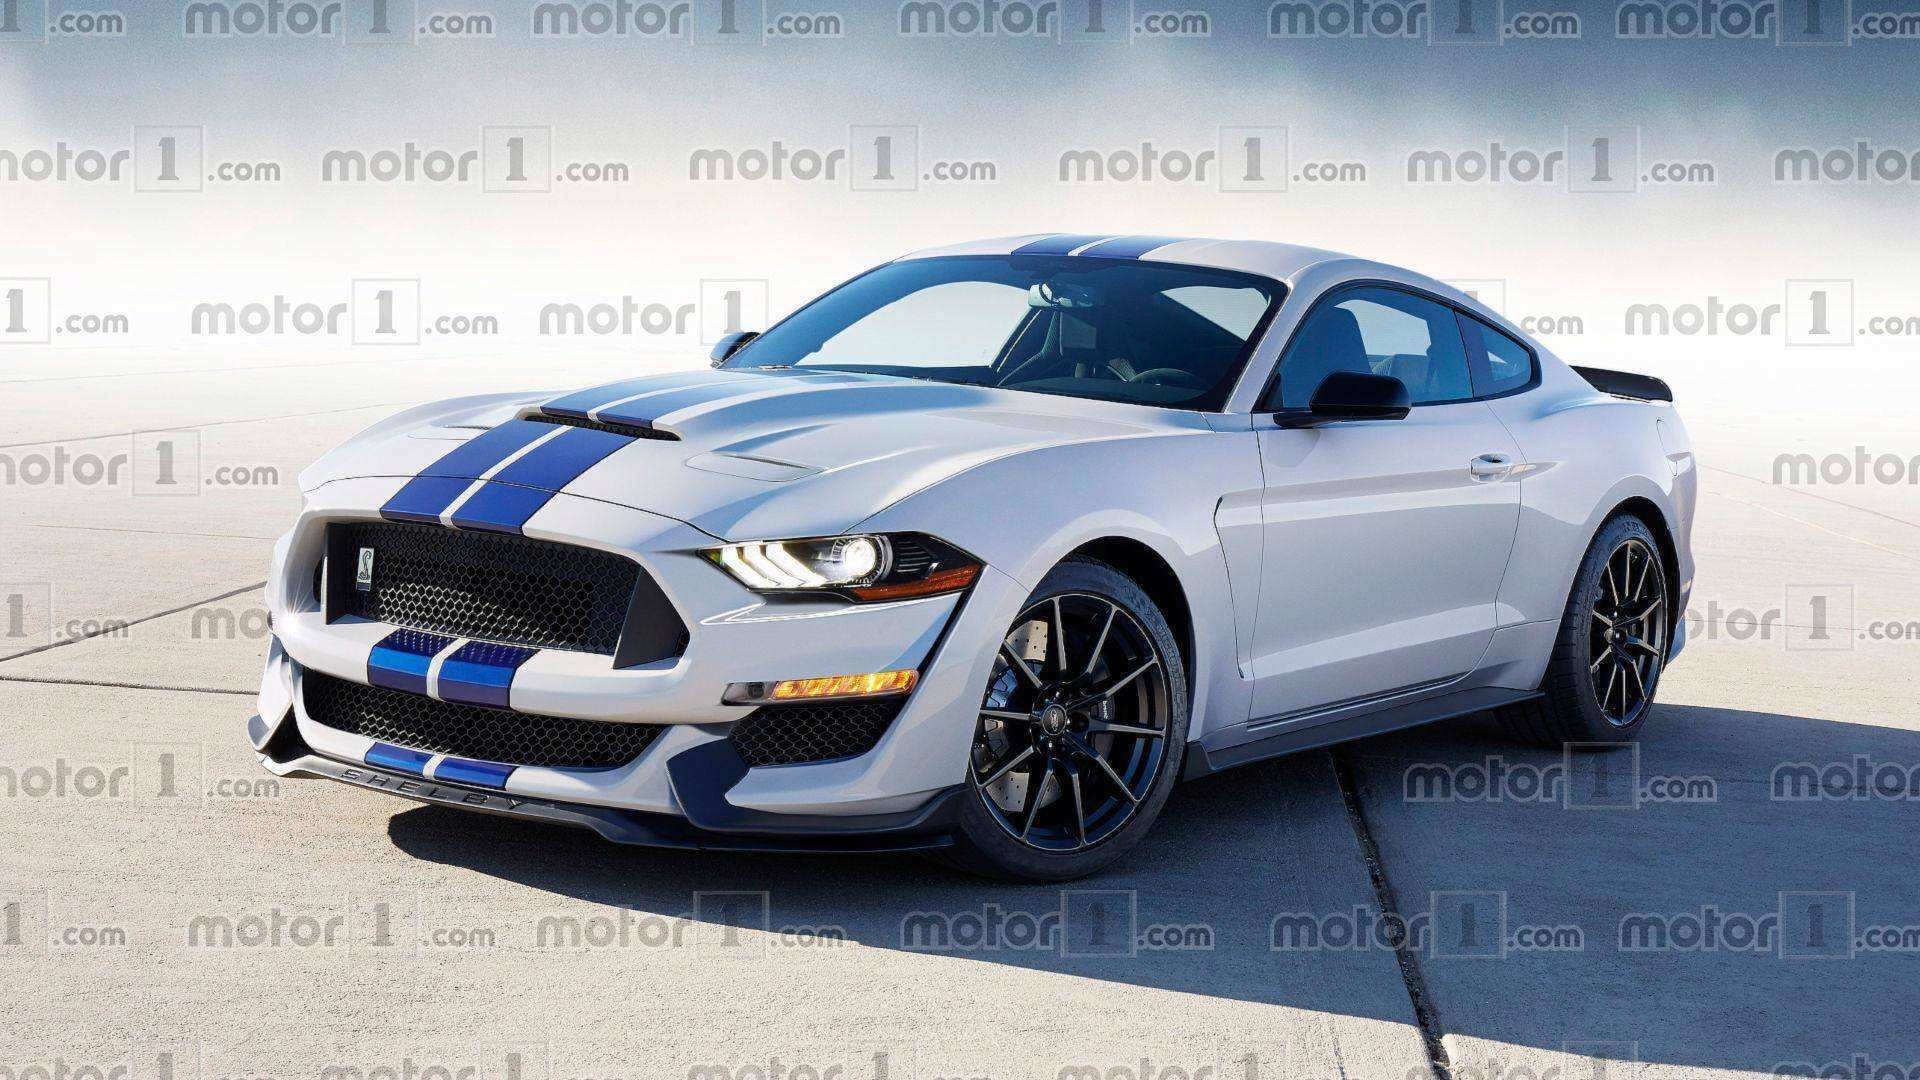 54 New 2020 Mustang Gt500 Speed Test